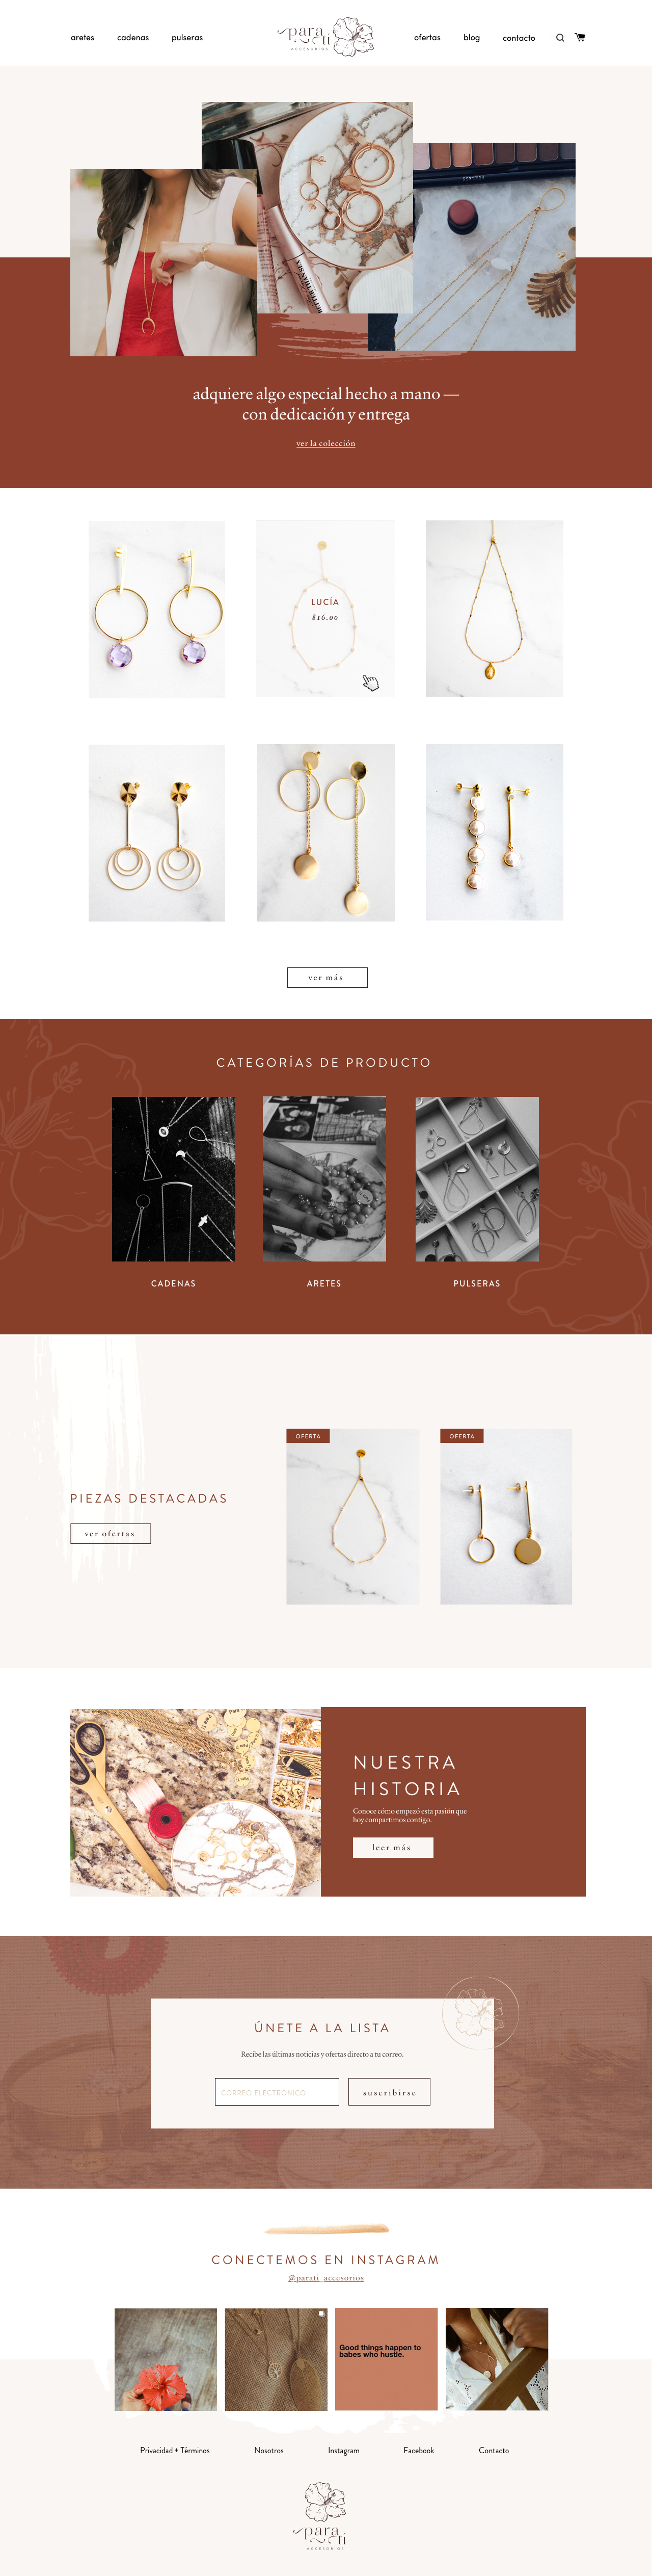 Web Design Kit Squarespace Diseño Web for Small Business E-Commerce